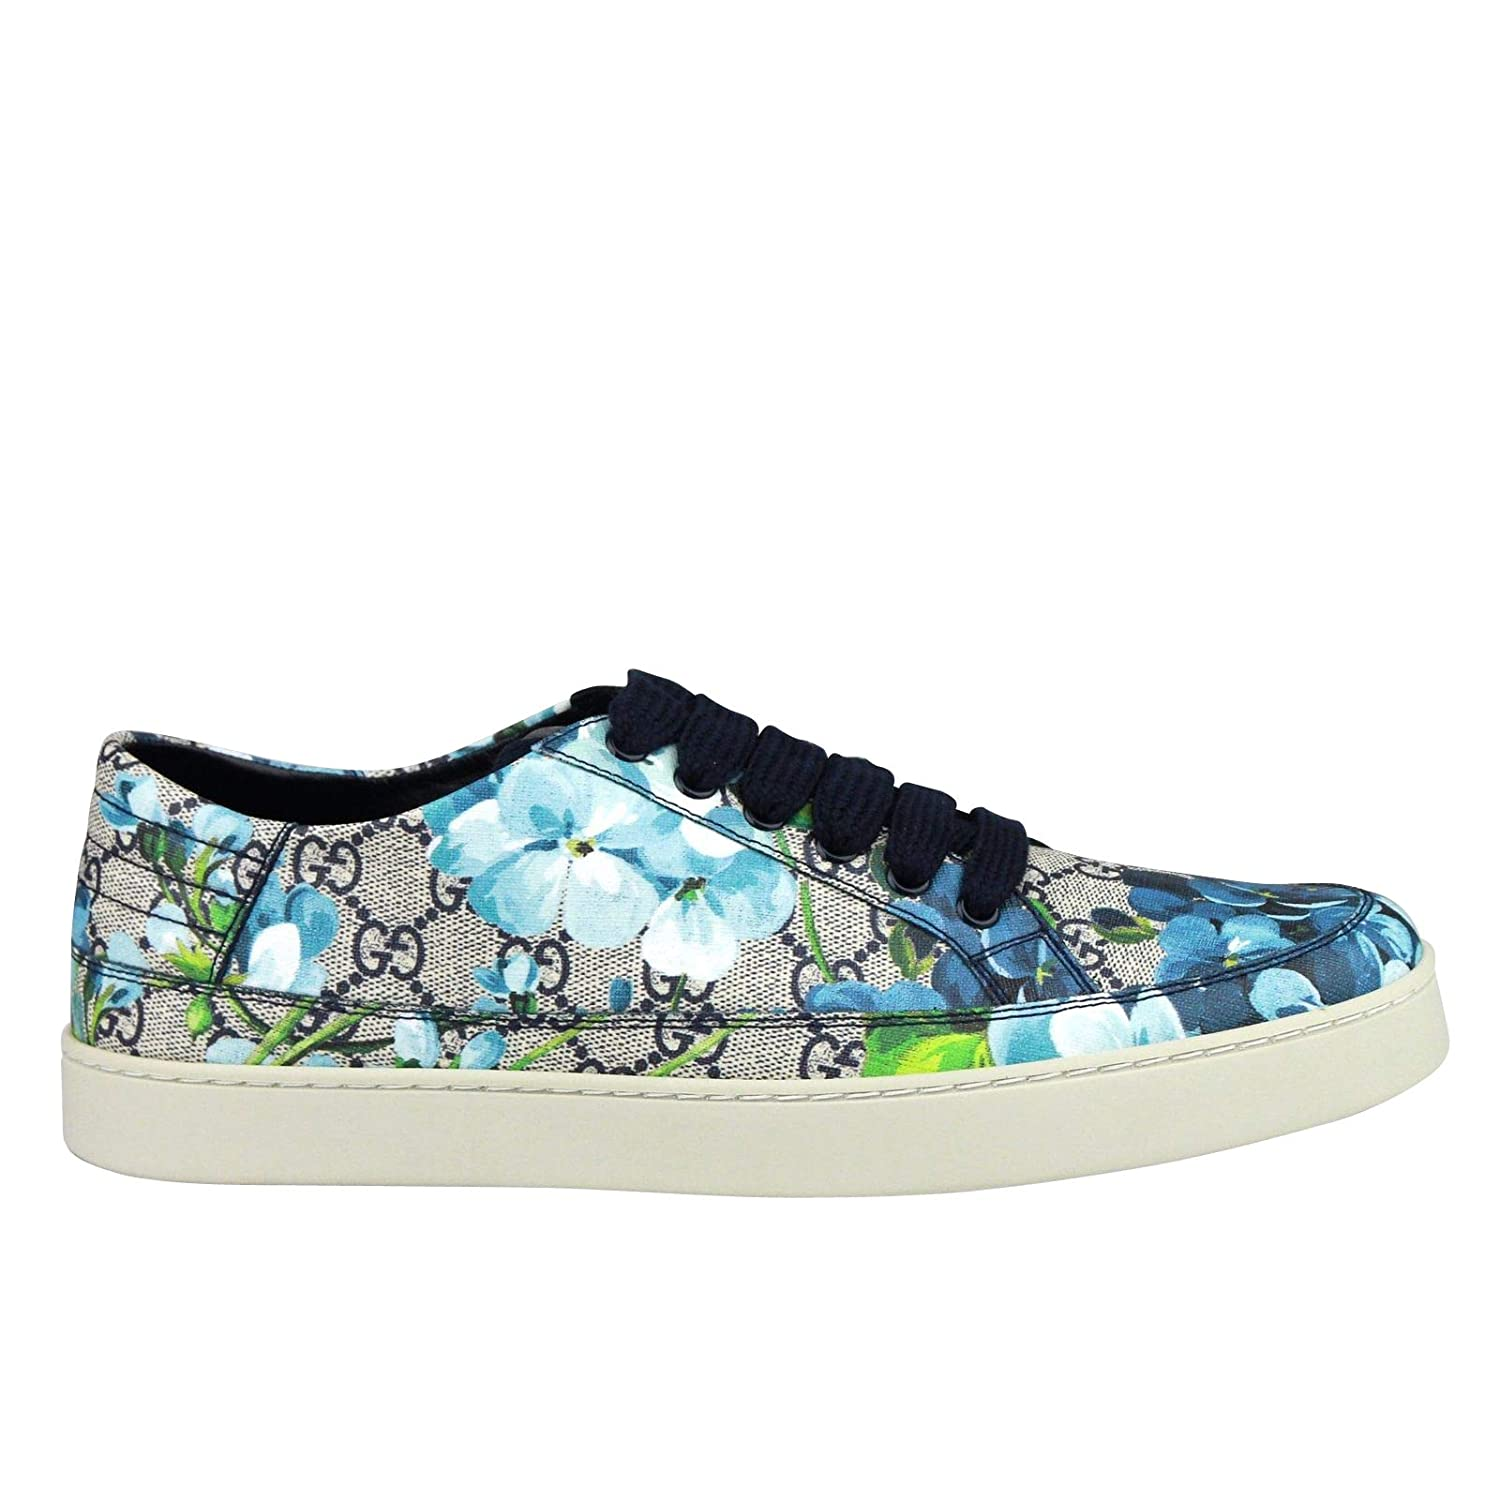 68f3226e7ff8bb Amazon.com  Gucci Bloom Flower Print Blue Supreme GG Canvas Sneaker Shoes  407343 8470  Shoes